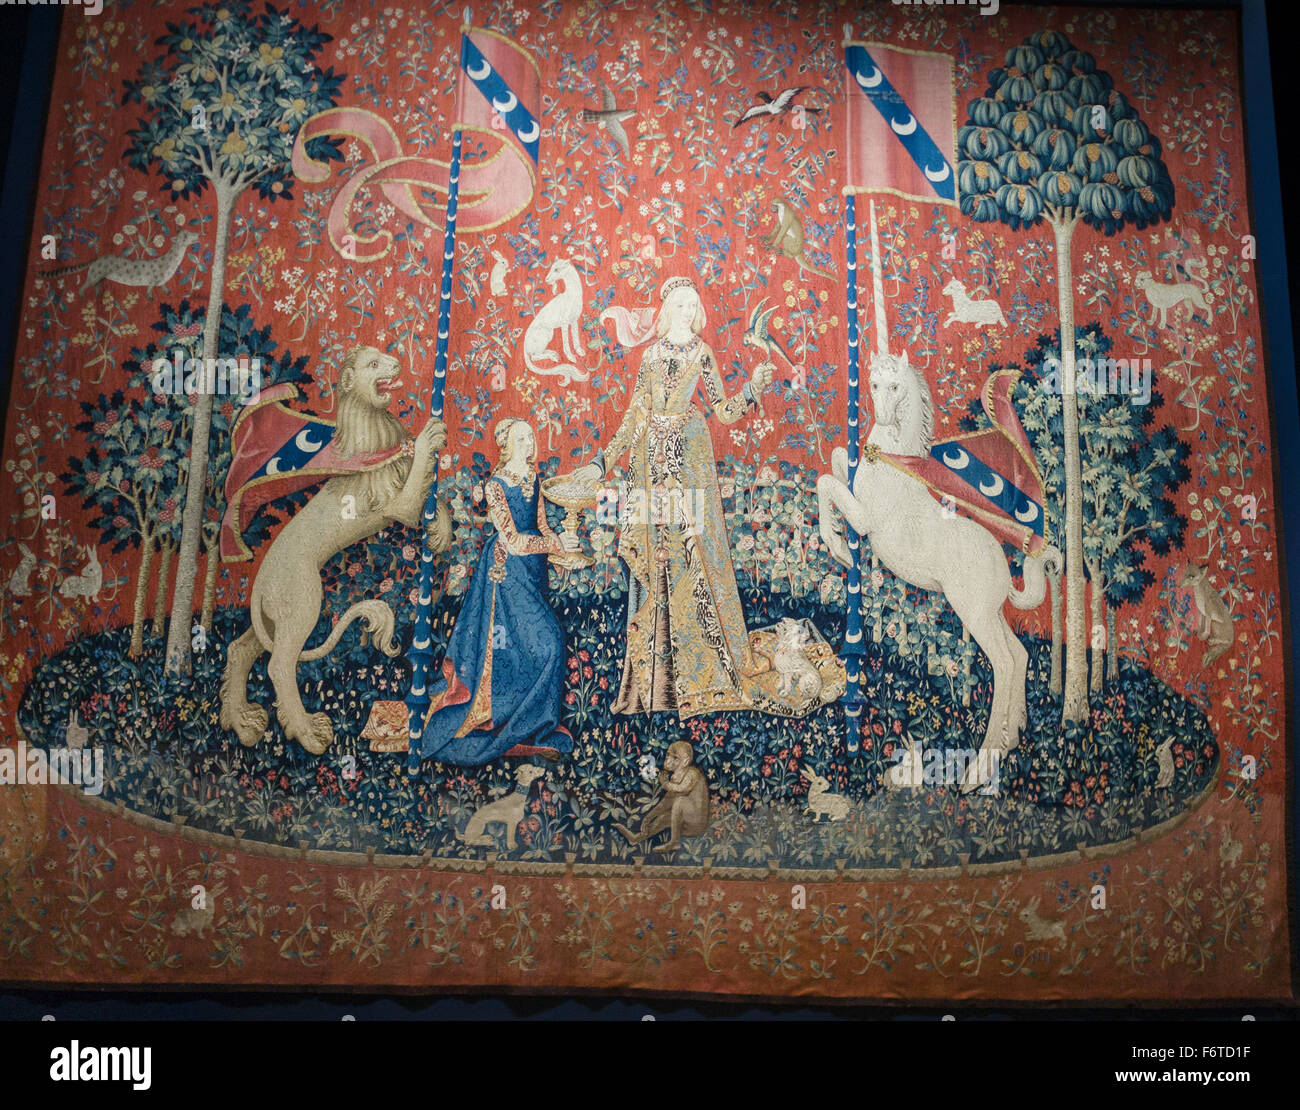 Lady and the Unicorn tapestry: Taste. One of a series of famous tapestries involving a woman and a Unicorn - Stock Image